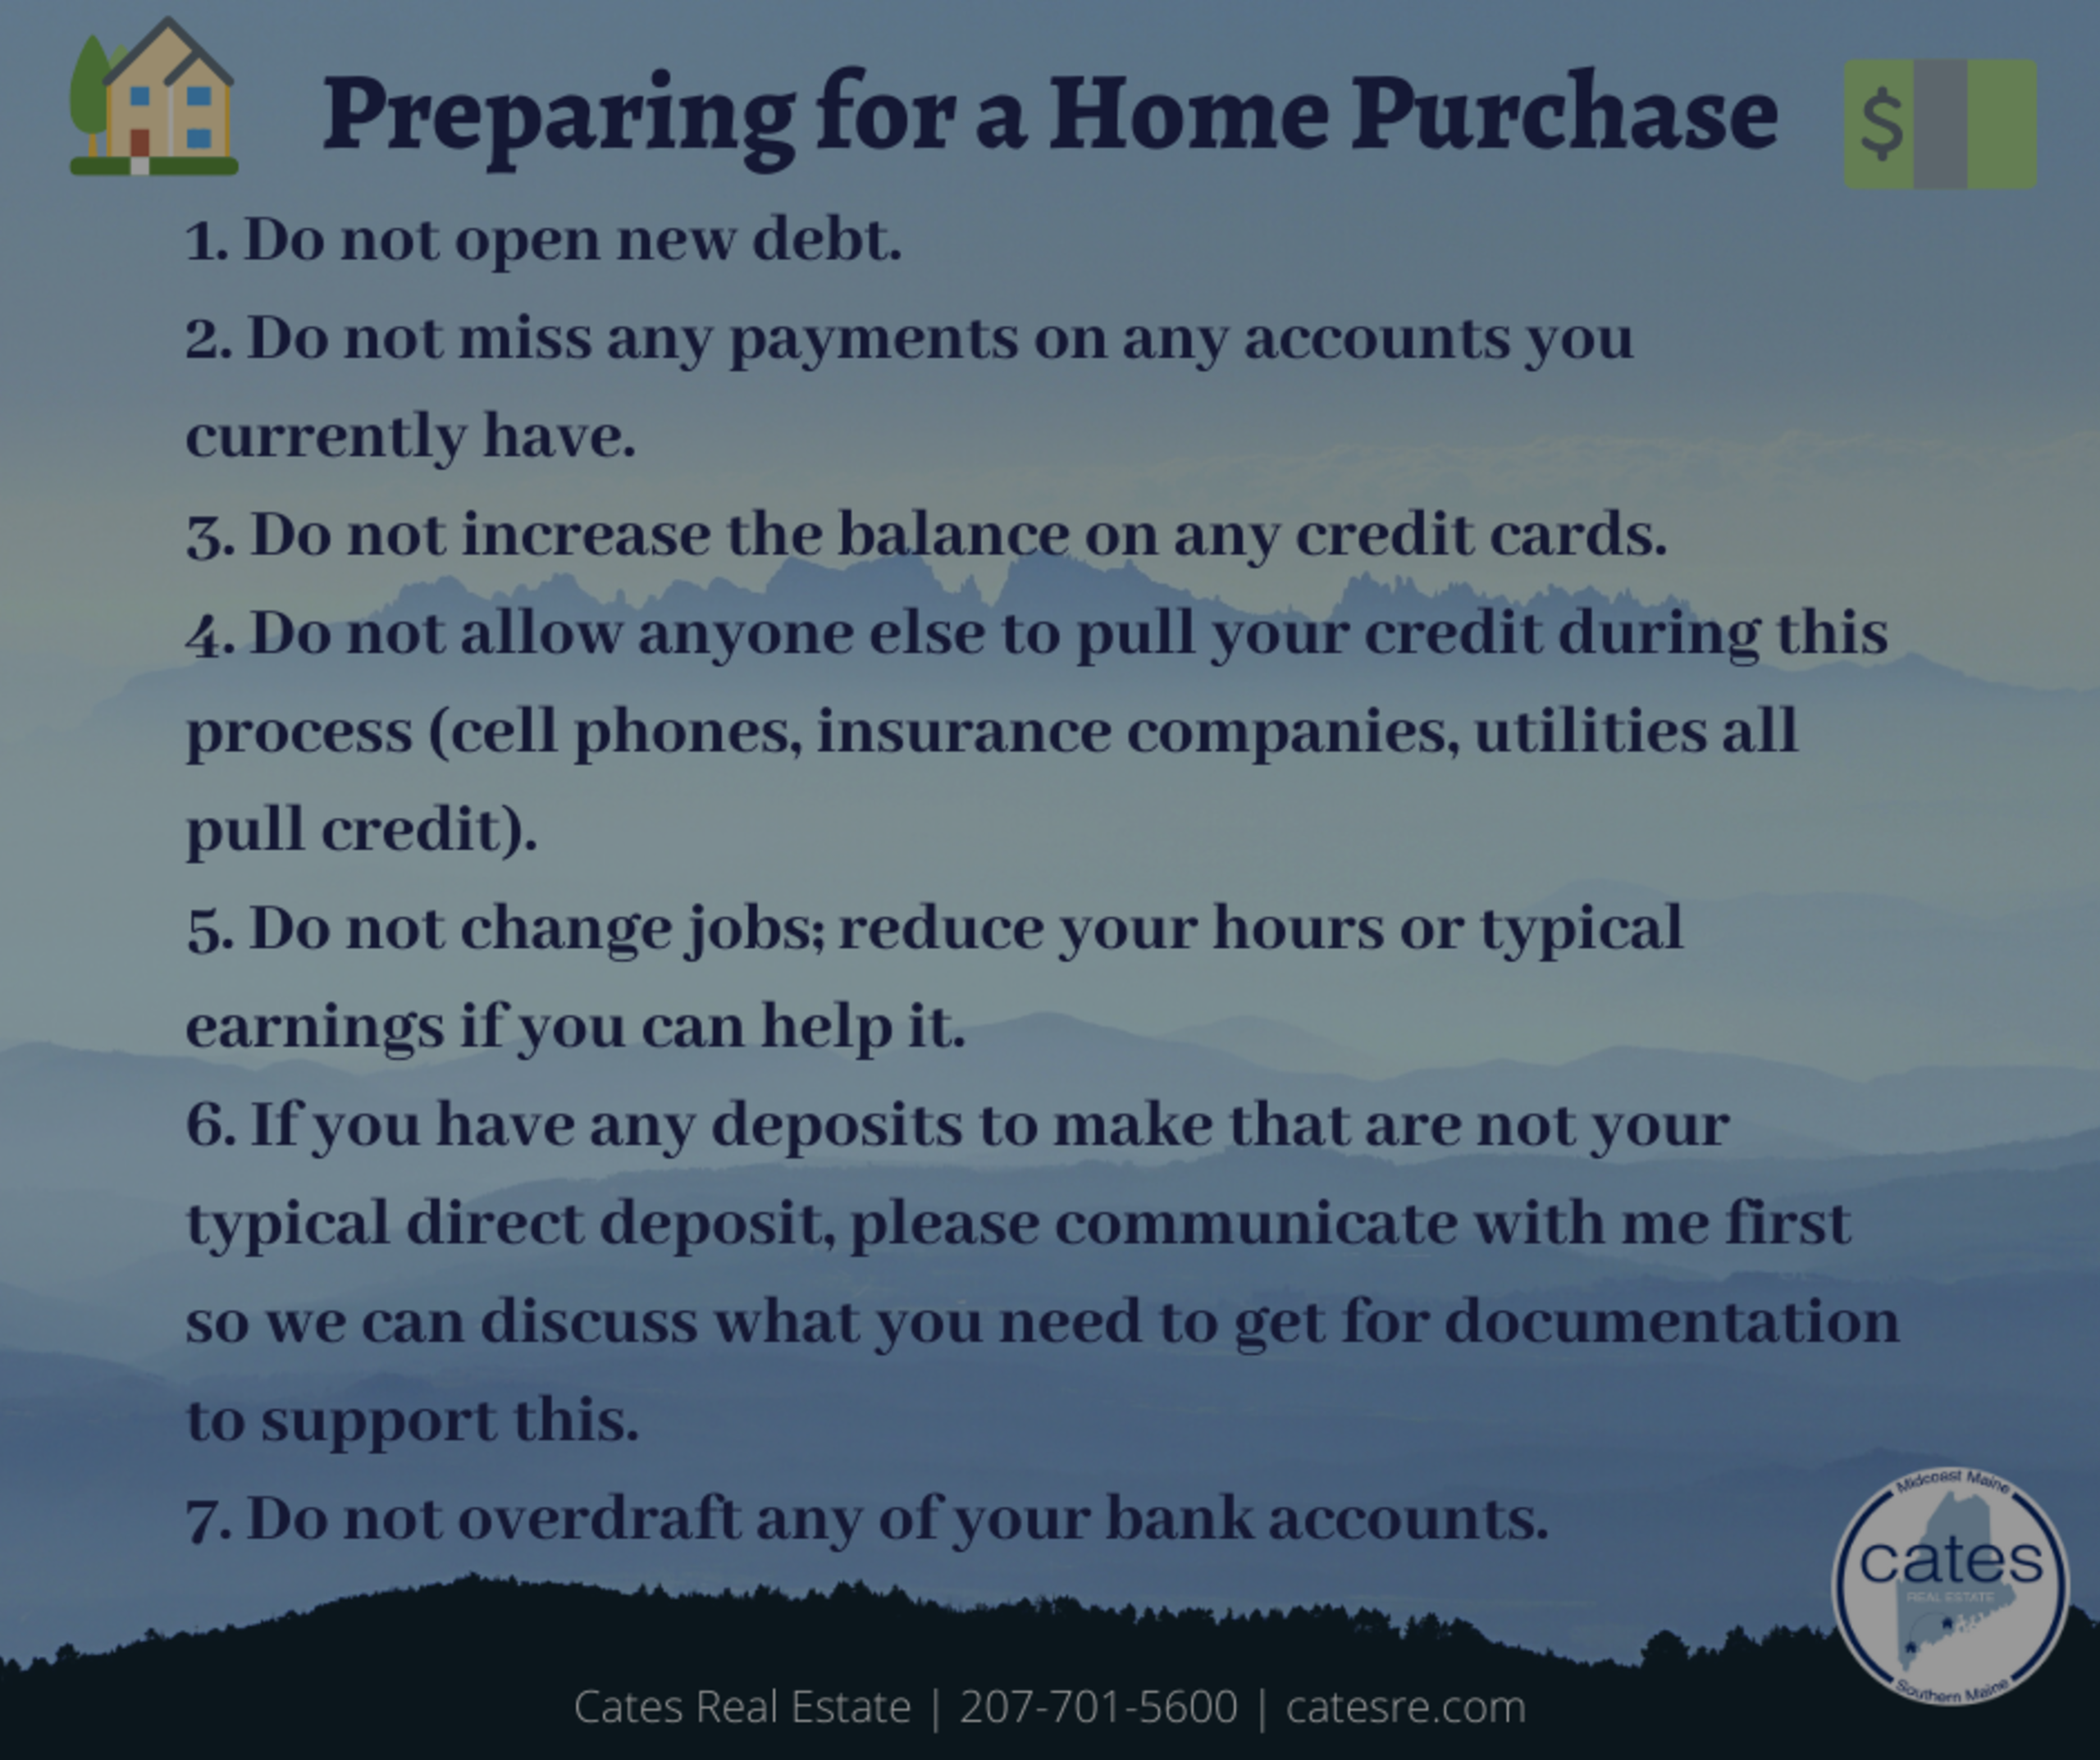 Preparing for a Home Purchase